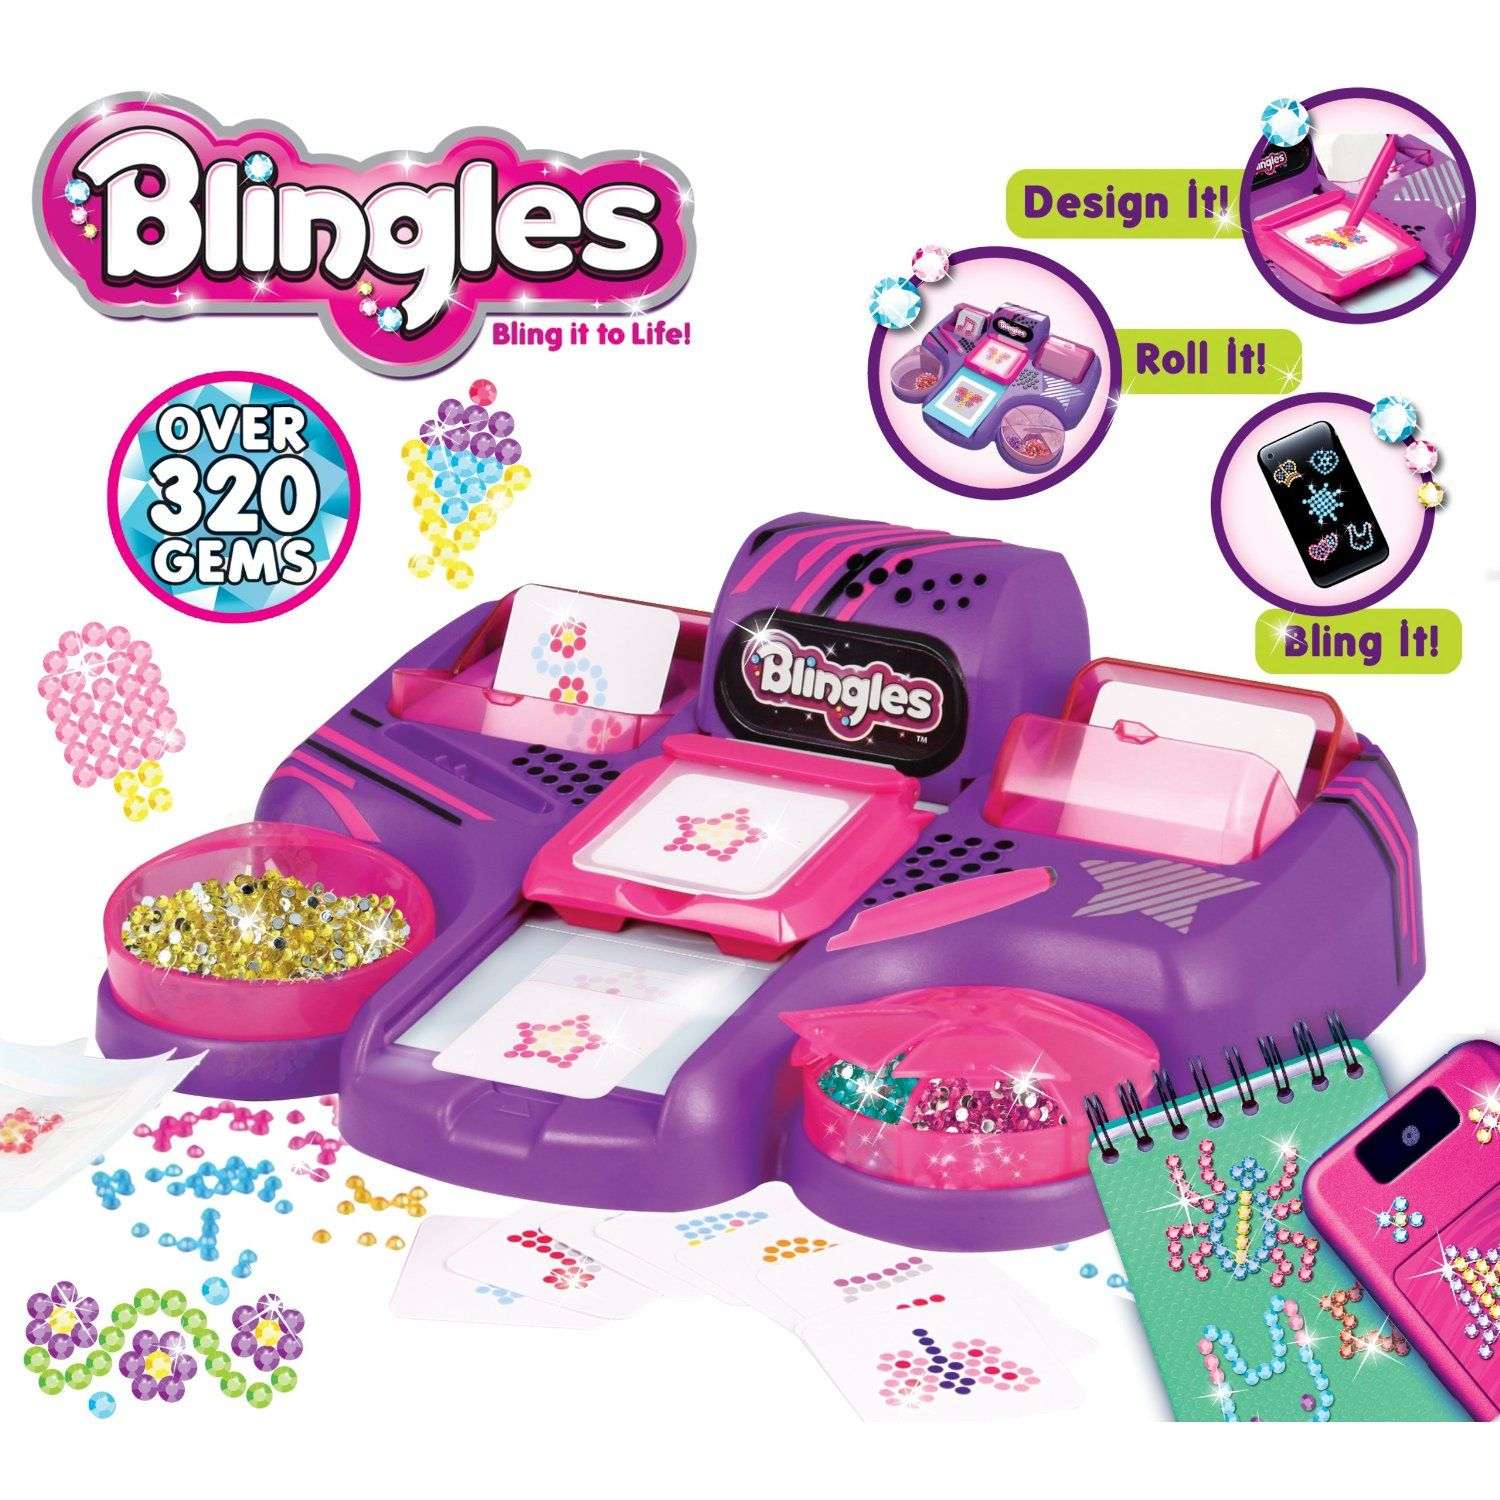 Image result for toys for age 9 girl 6 year old toys